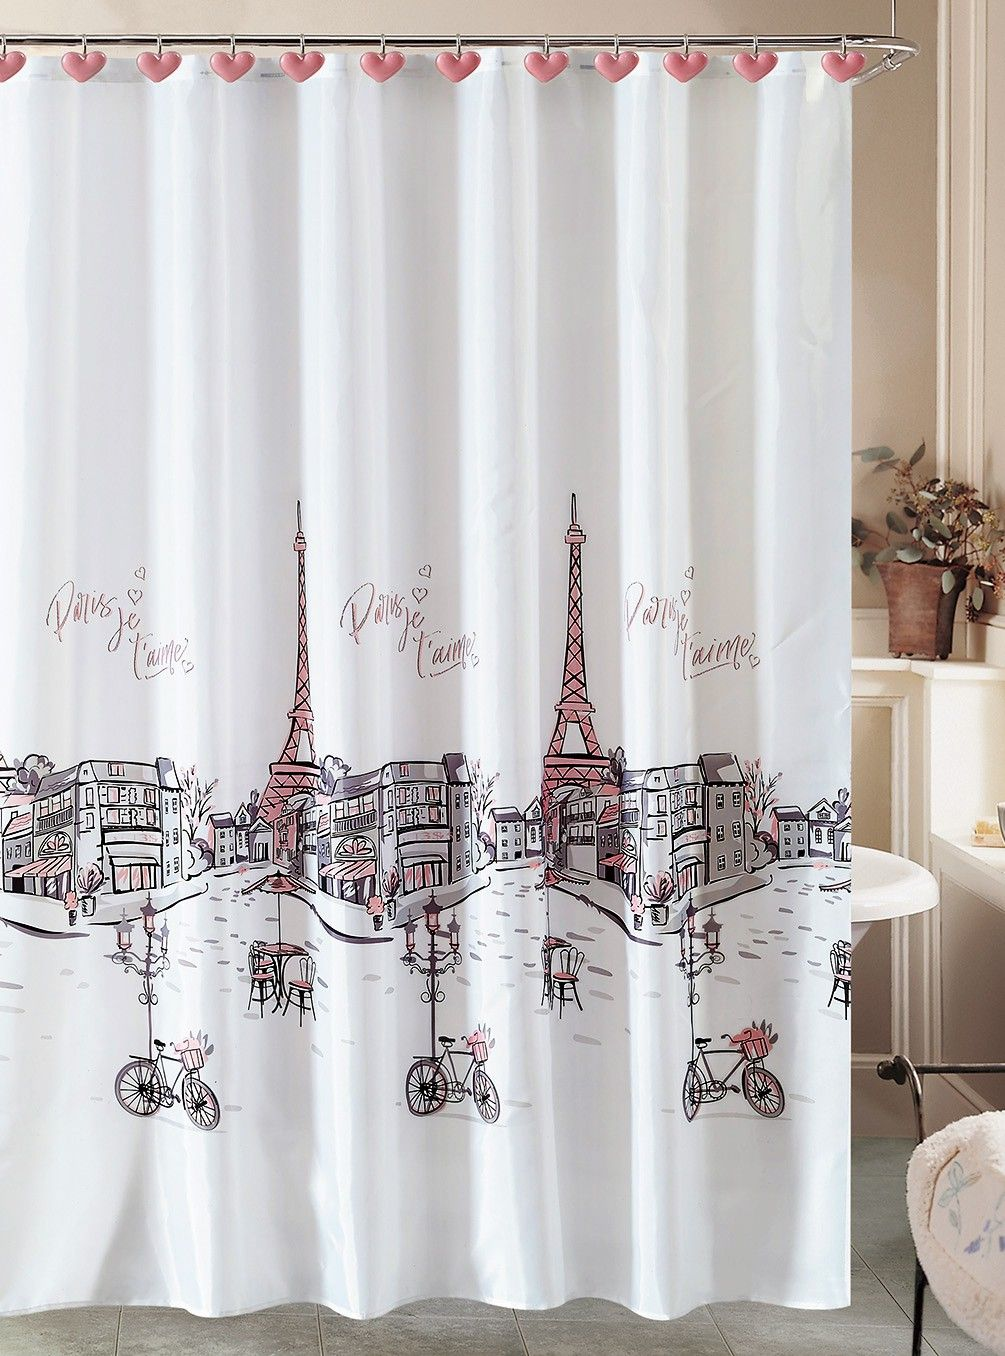 Beatrice Sweet Paris Shower Curtain And 12 Resin Hooks Eiffel Tower French Grey Pink Pink Shower Curtains Shower Curtain Holiday Shower Curtains